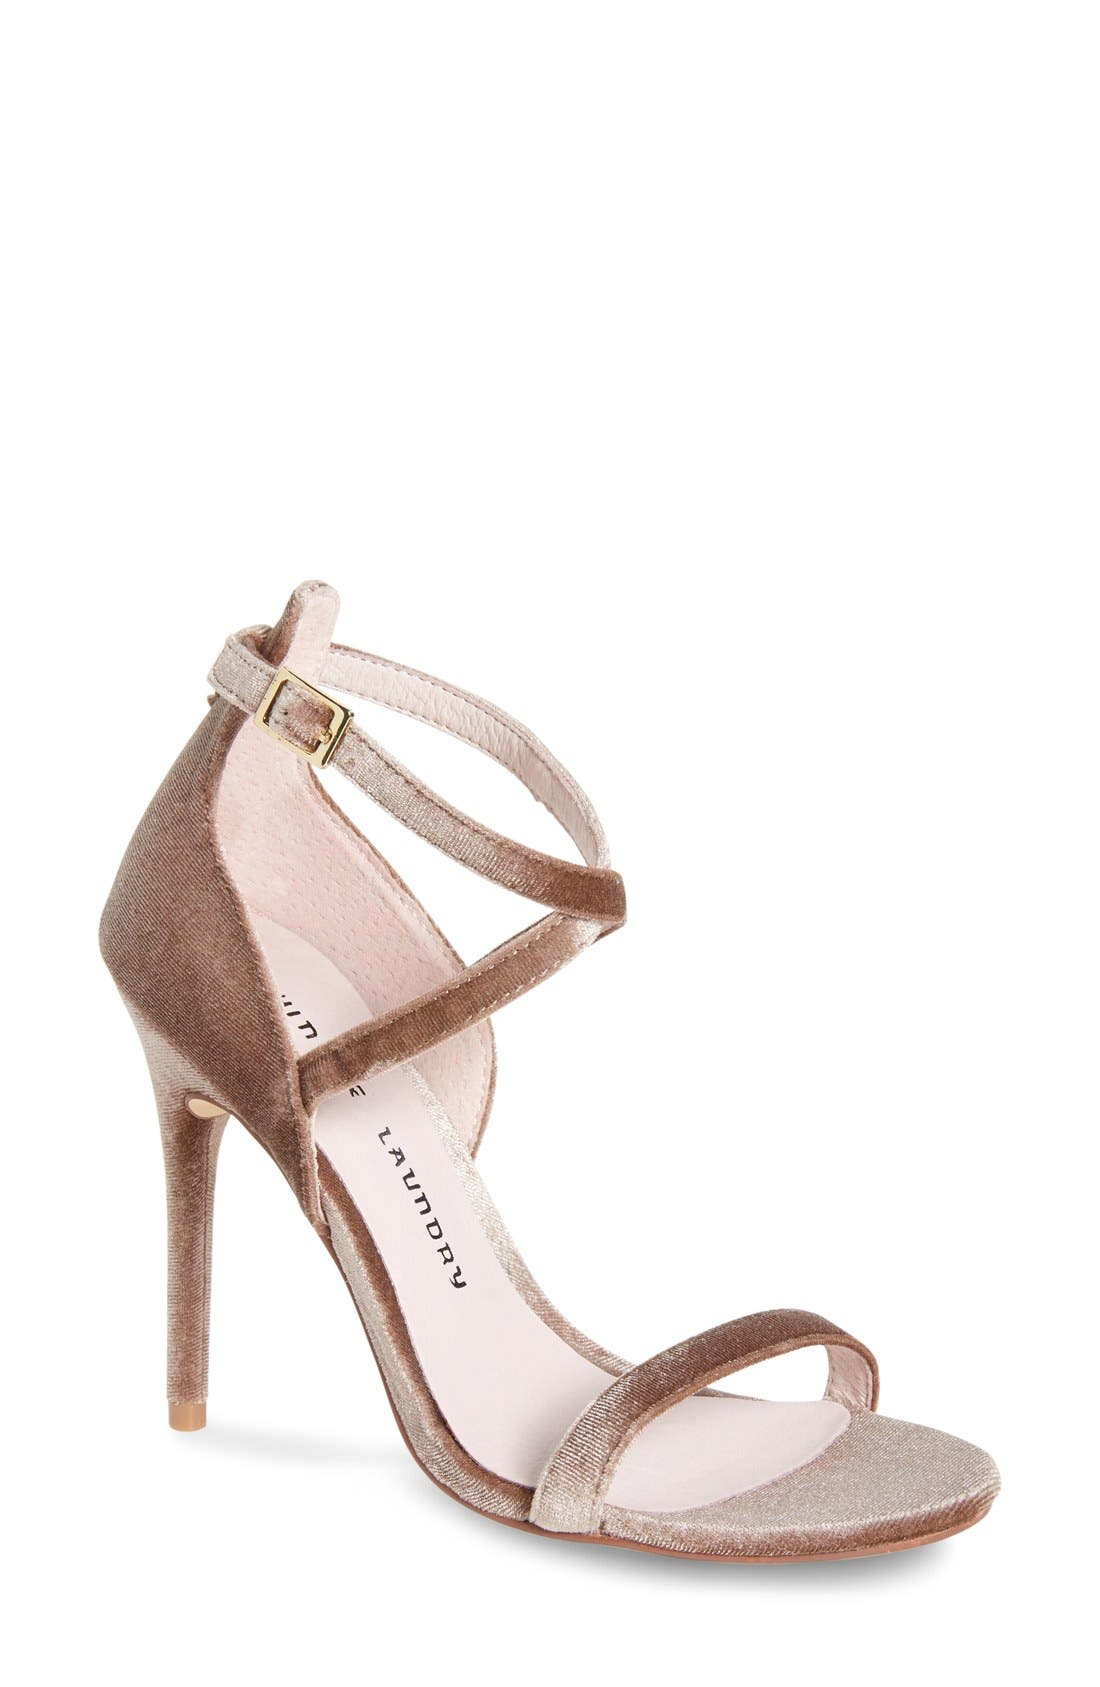 Alternate Image 1 Selected - Chinese Laundry Lavelle Ankle Strap Sandal (Women)